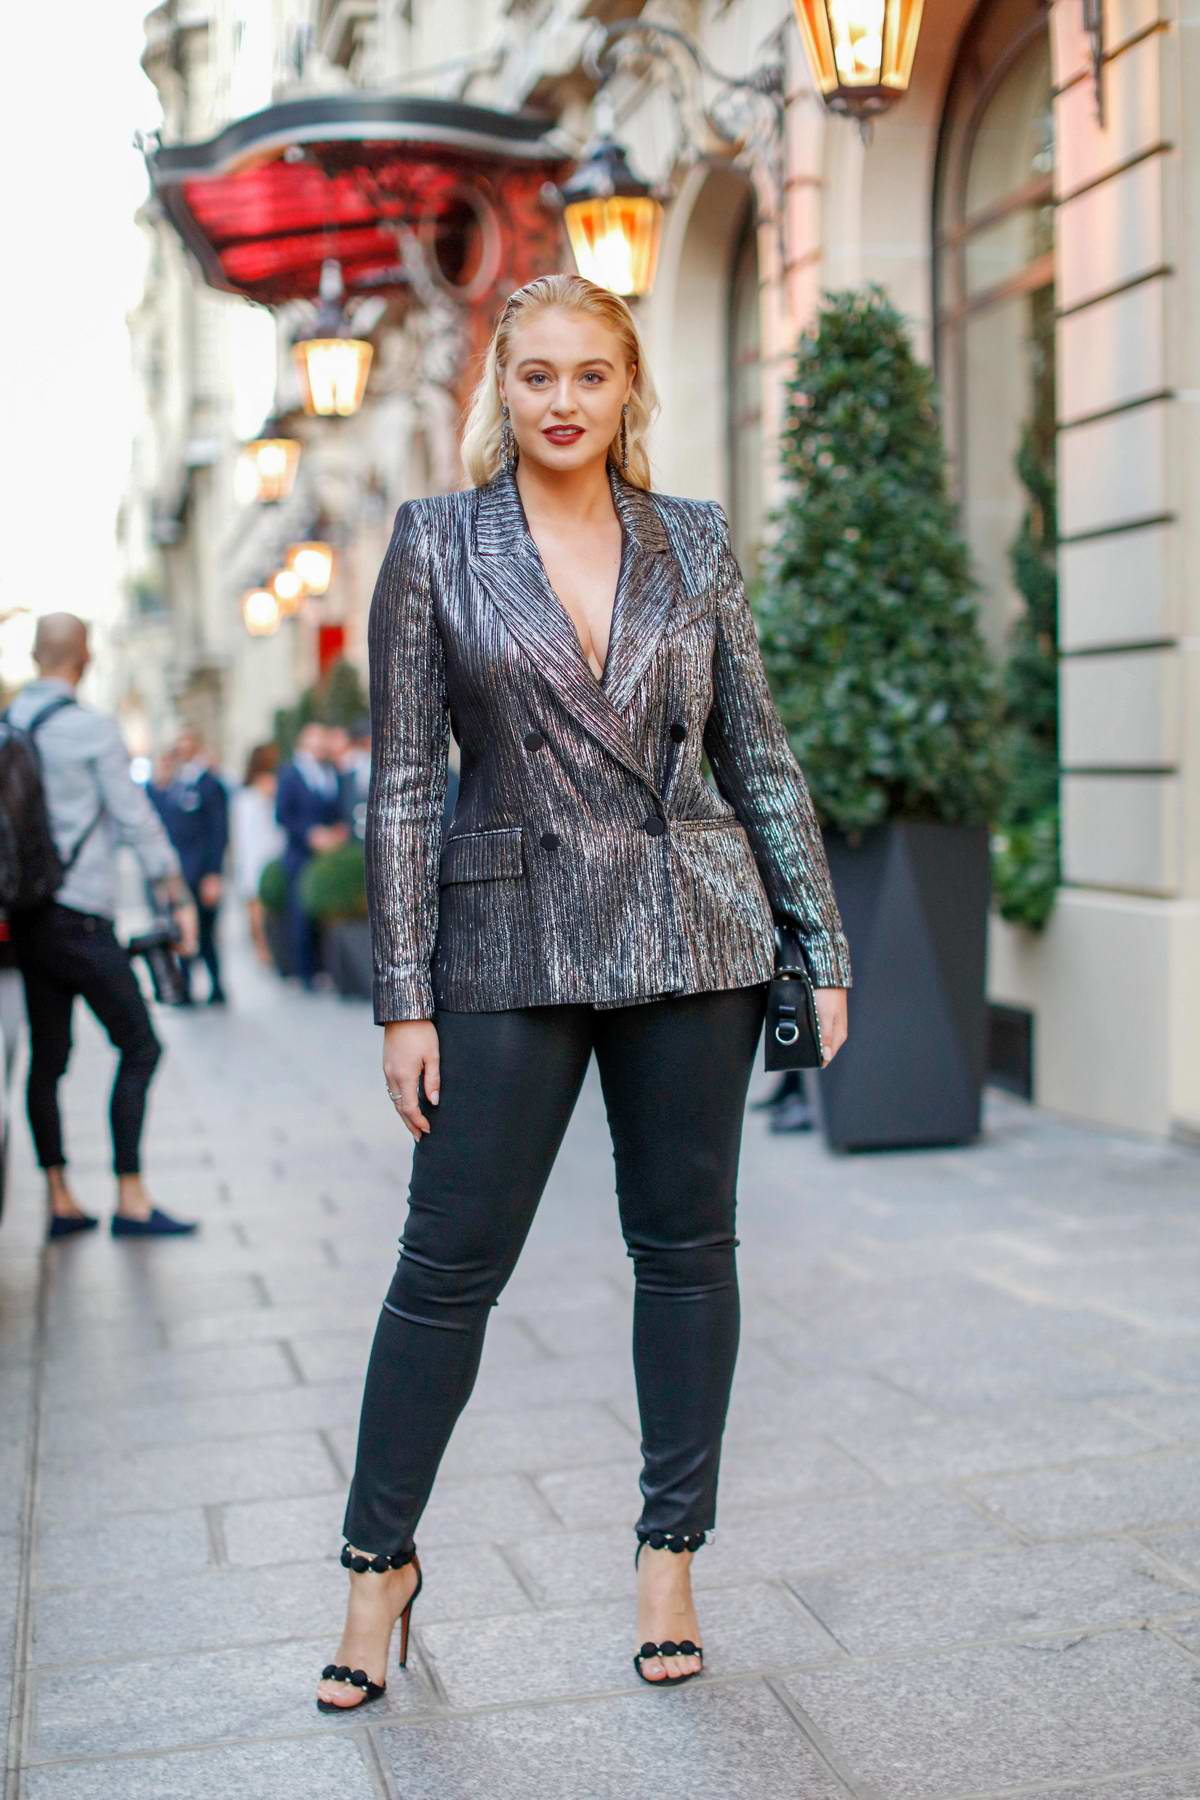 Iskra Lawrence steps out in striped grey blazer and black leather pants during Paris Fashion Week in Paris, France